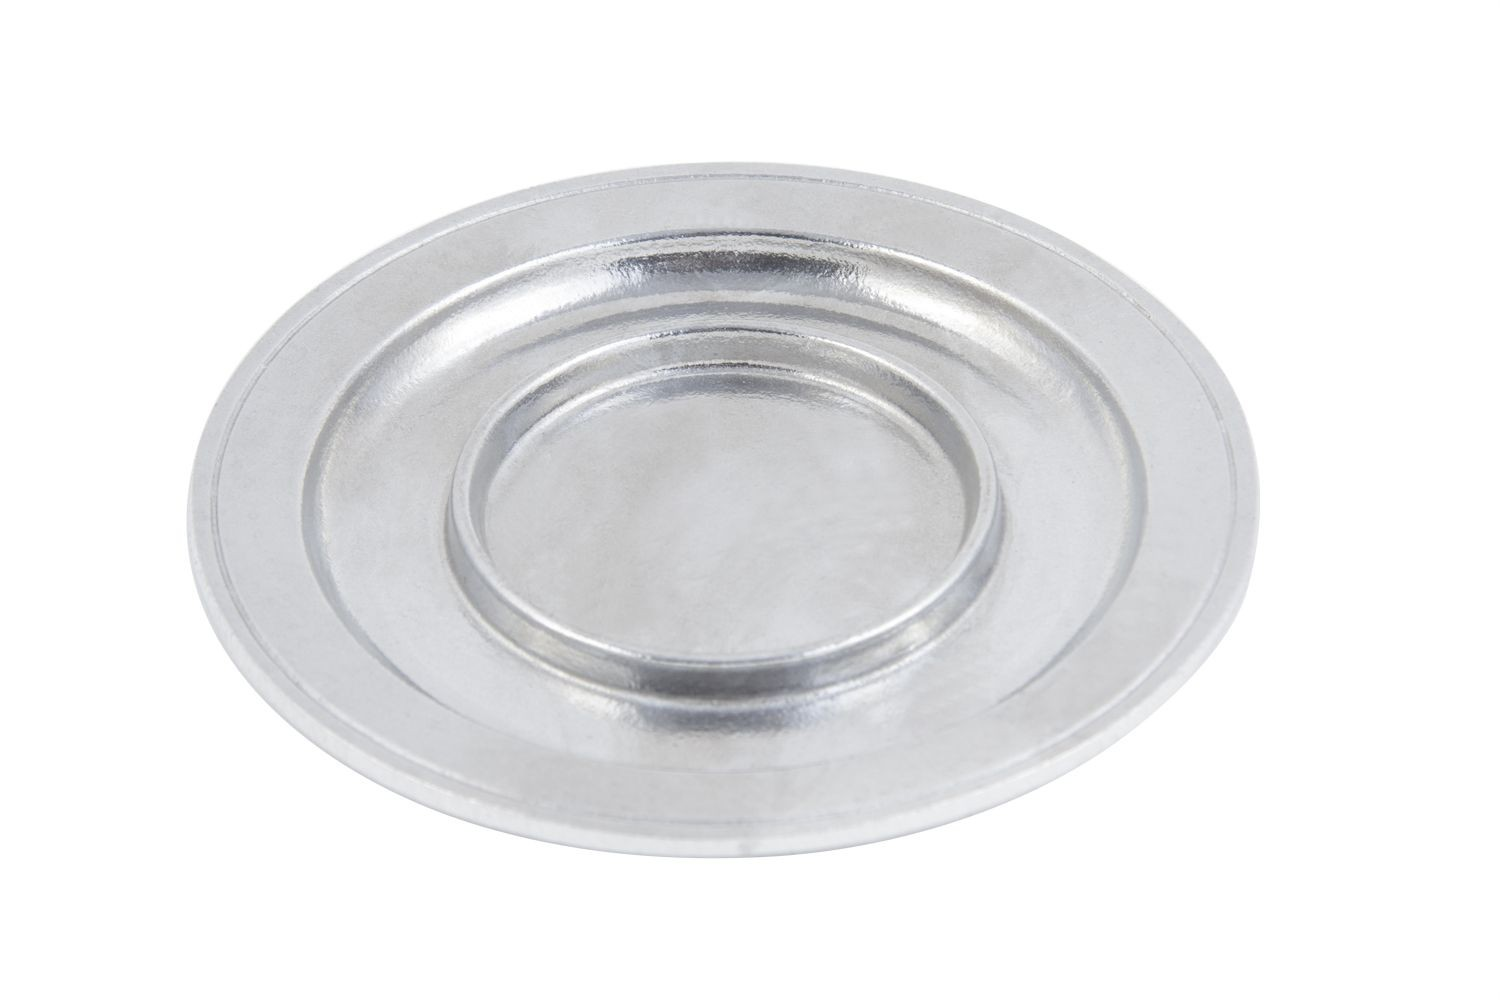 "Bon Chef 3021P Saucer, Pewter Glo 6 5/8"" Dia., Set of 6"